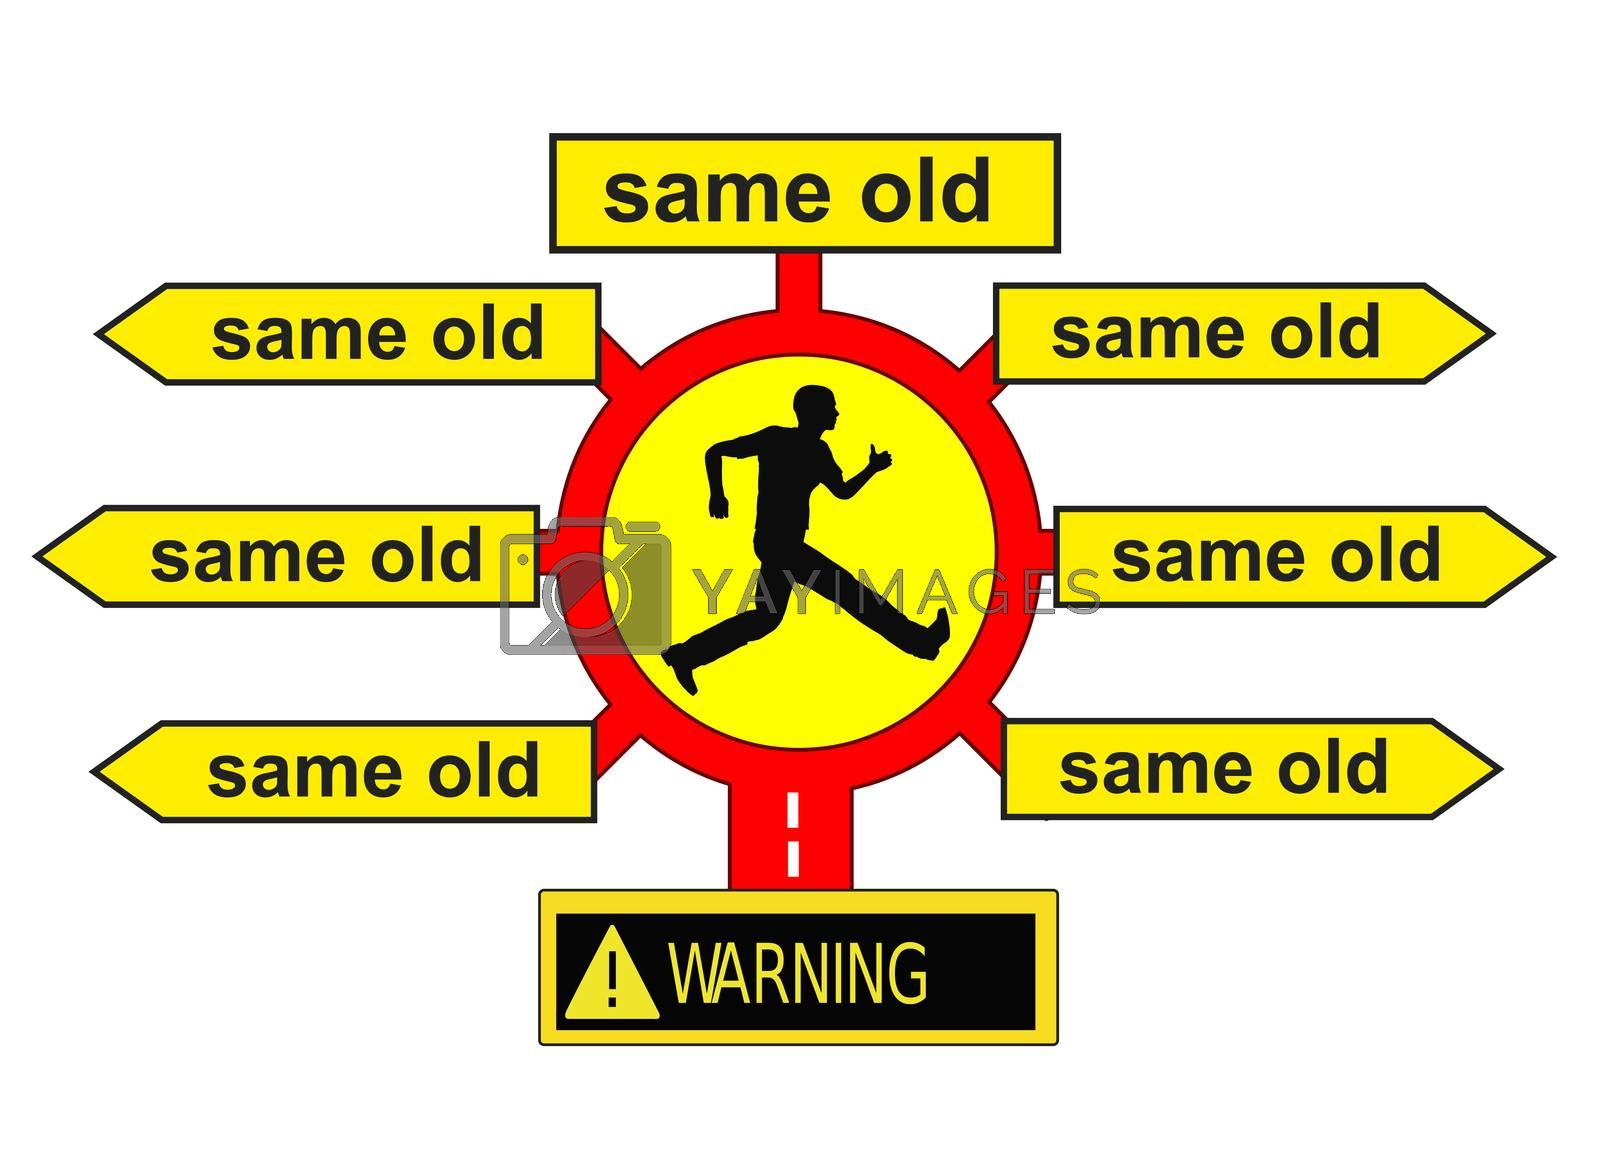 Concept sign for settled habits and conventions which are very stable and difficult to overcome: old habits die hard